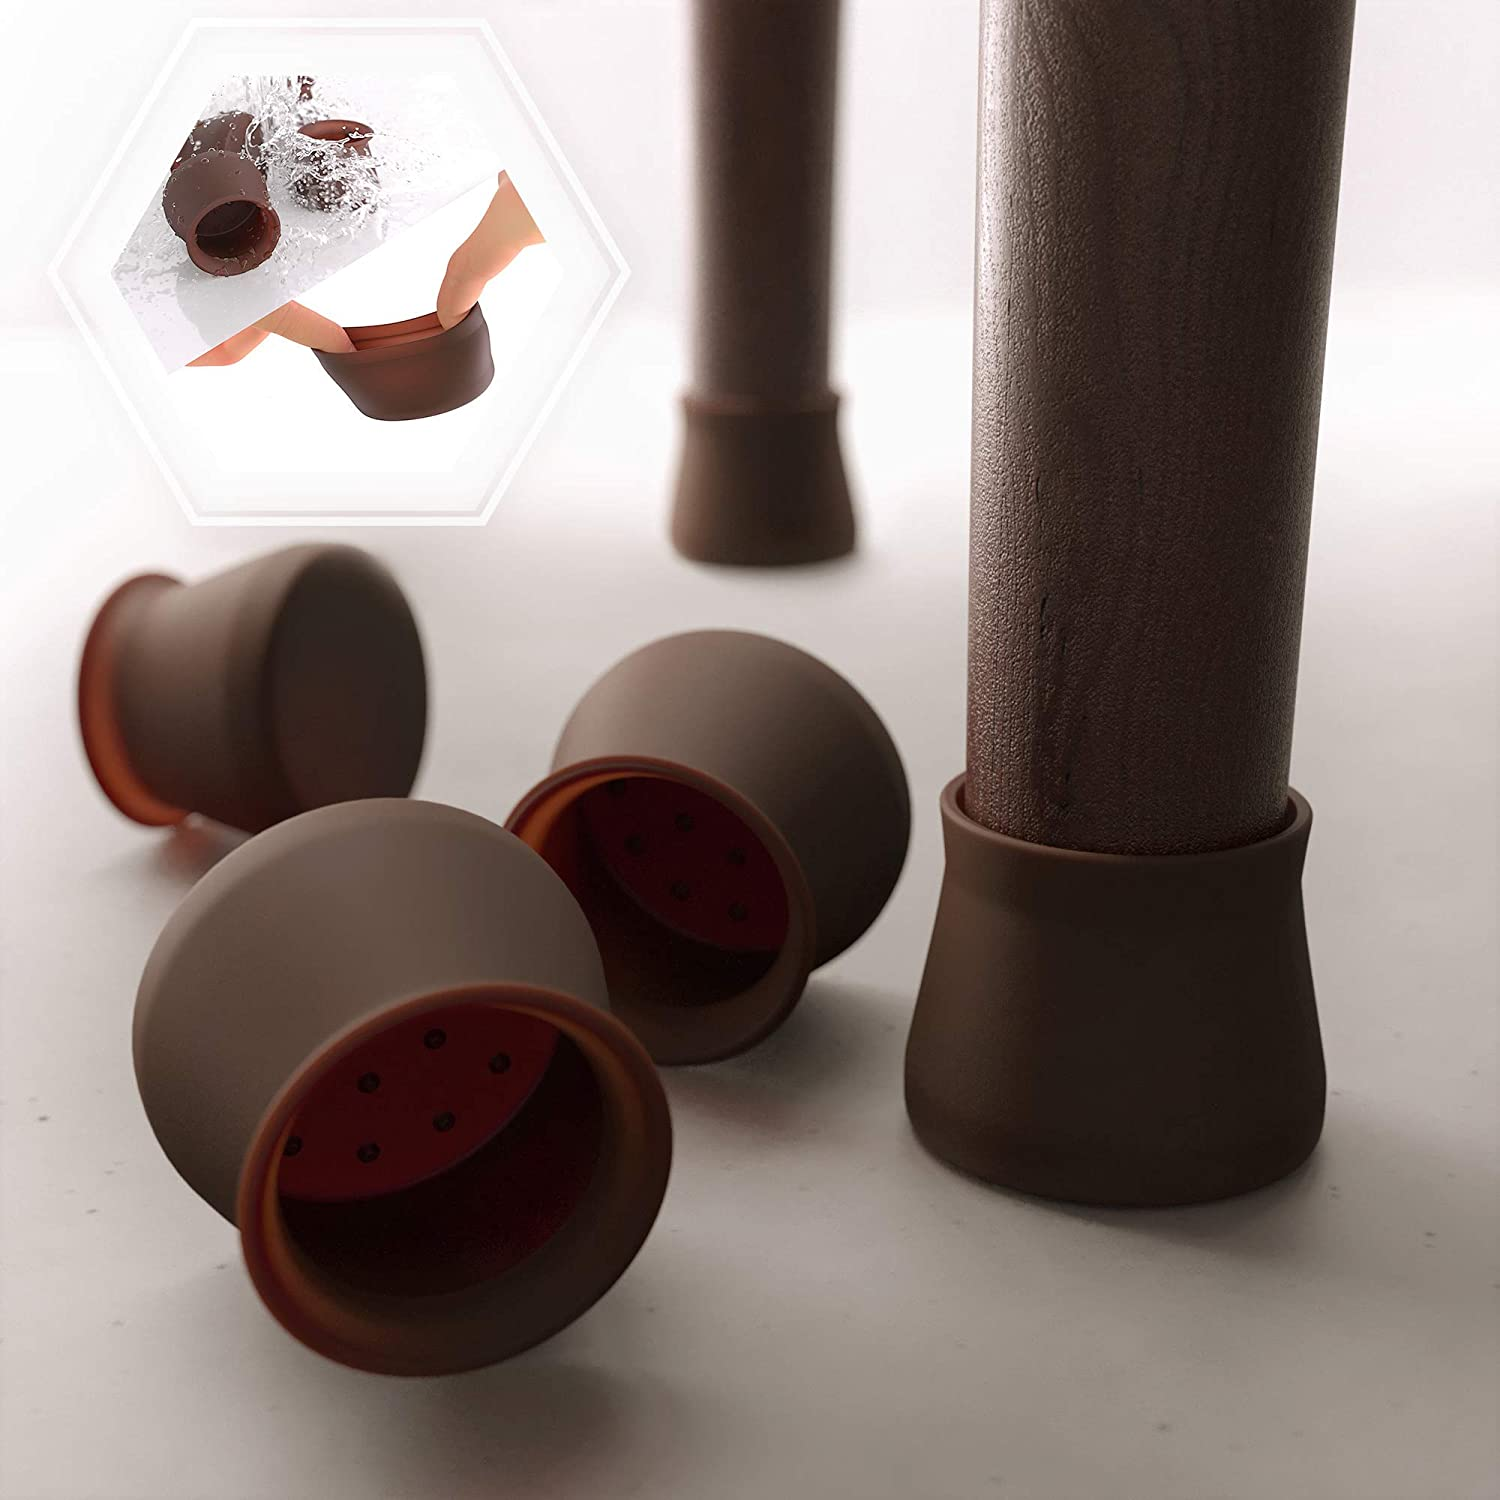 16 PCS Dark Walnut Color Silicone Chair Leg Floor Protectors – Anti-Slip Furniture Silicon Protection Cover - Silicone Furniture Leg Caps. Protect Furniture & Floors from Scratches and Noise.